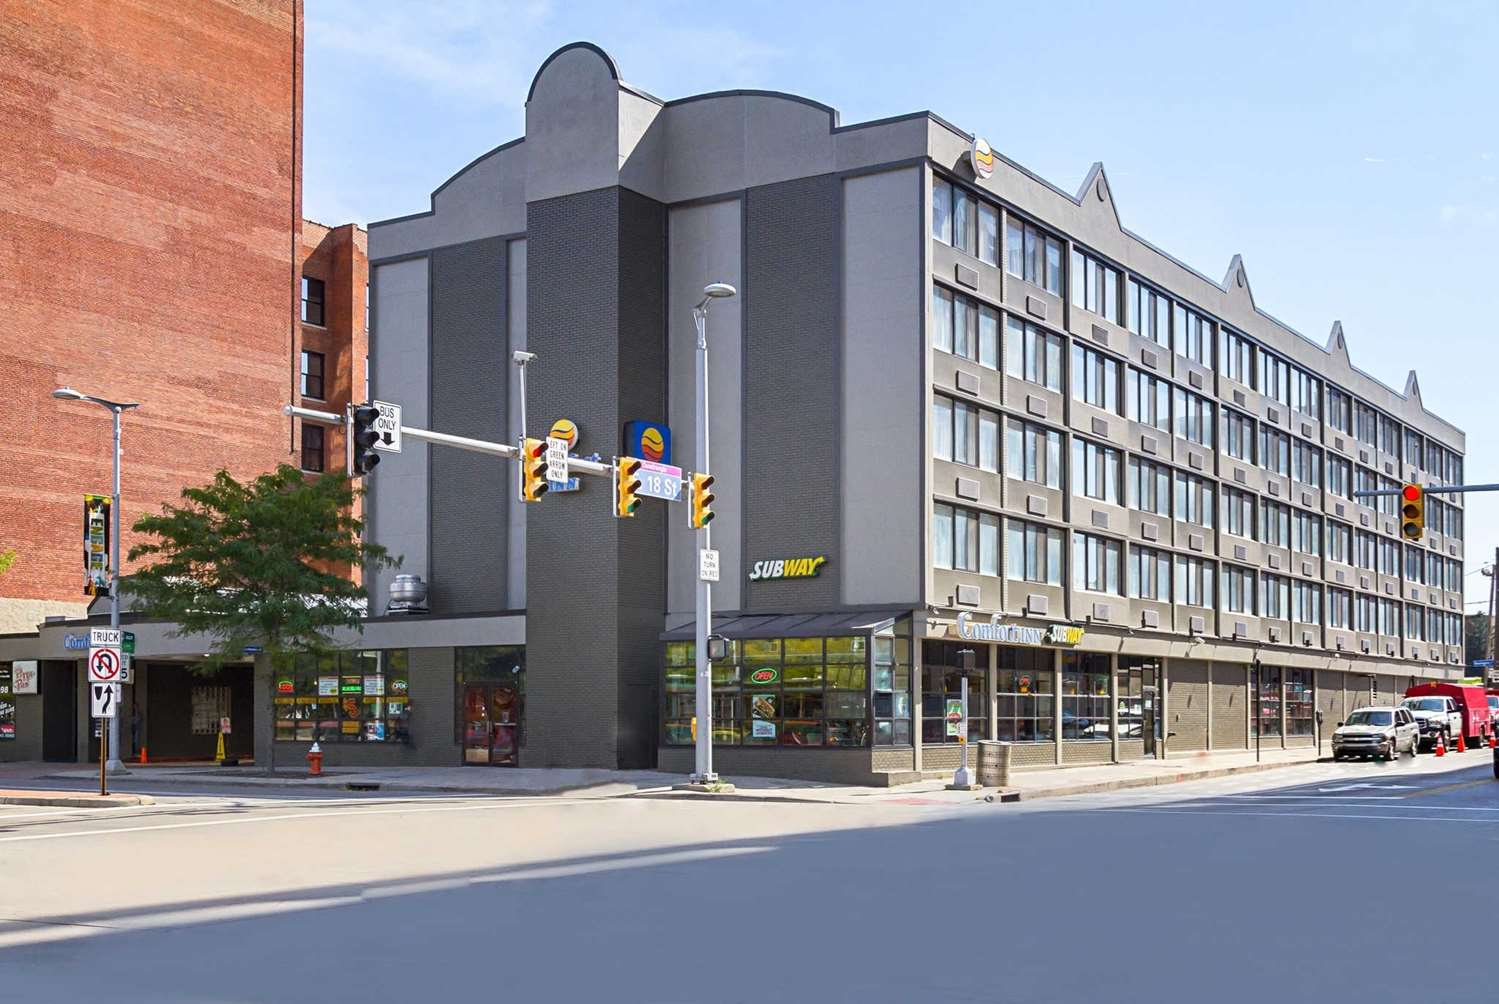 comfort inn downtown cleveland oh see discounts. Black Bedroom Furniture Sets. Home Design Ideas